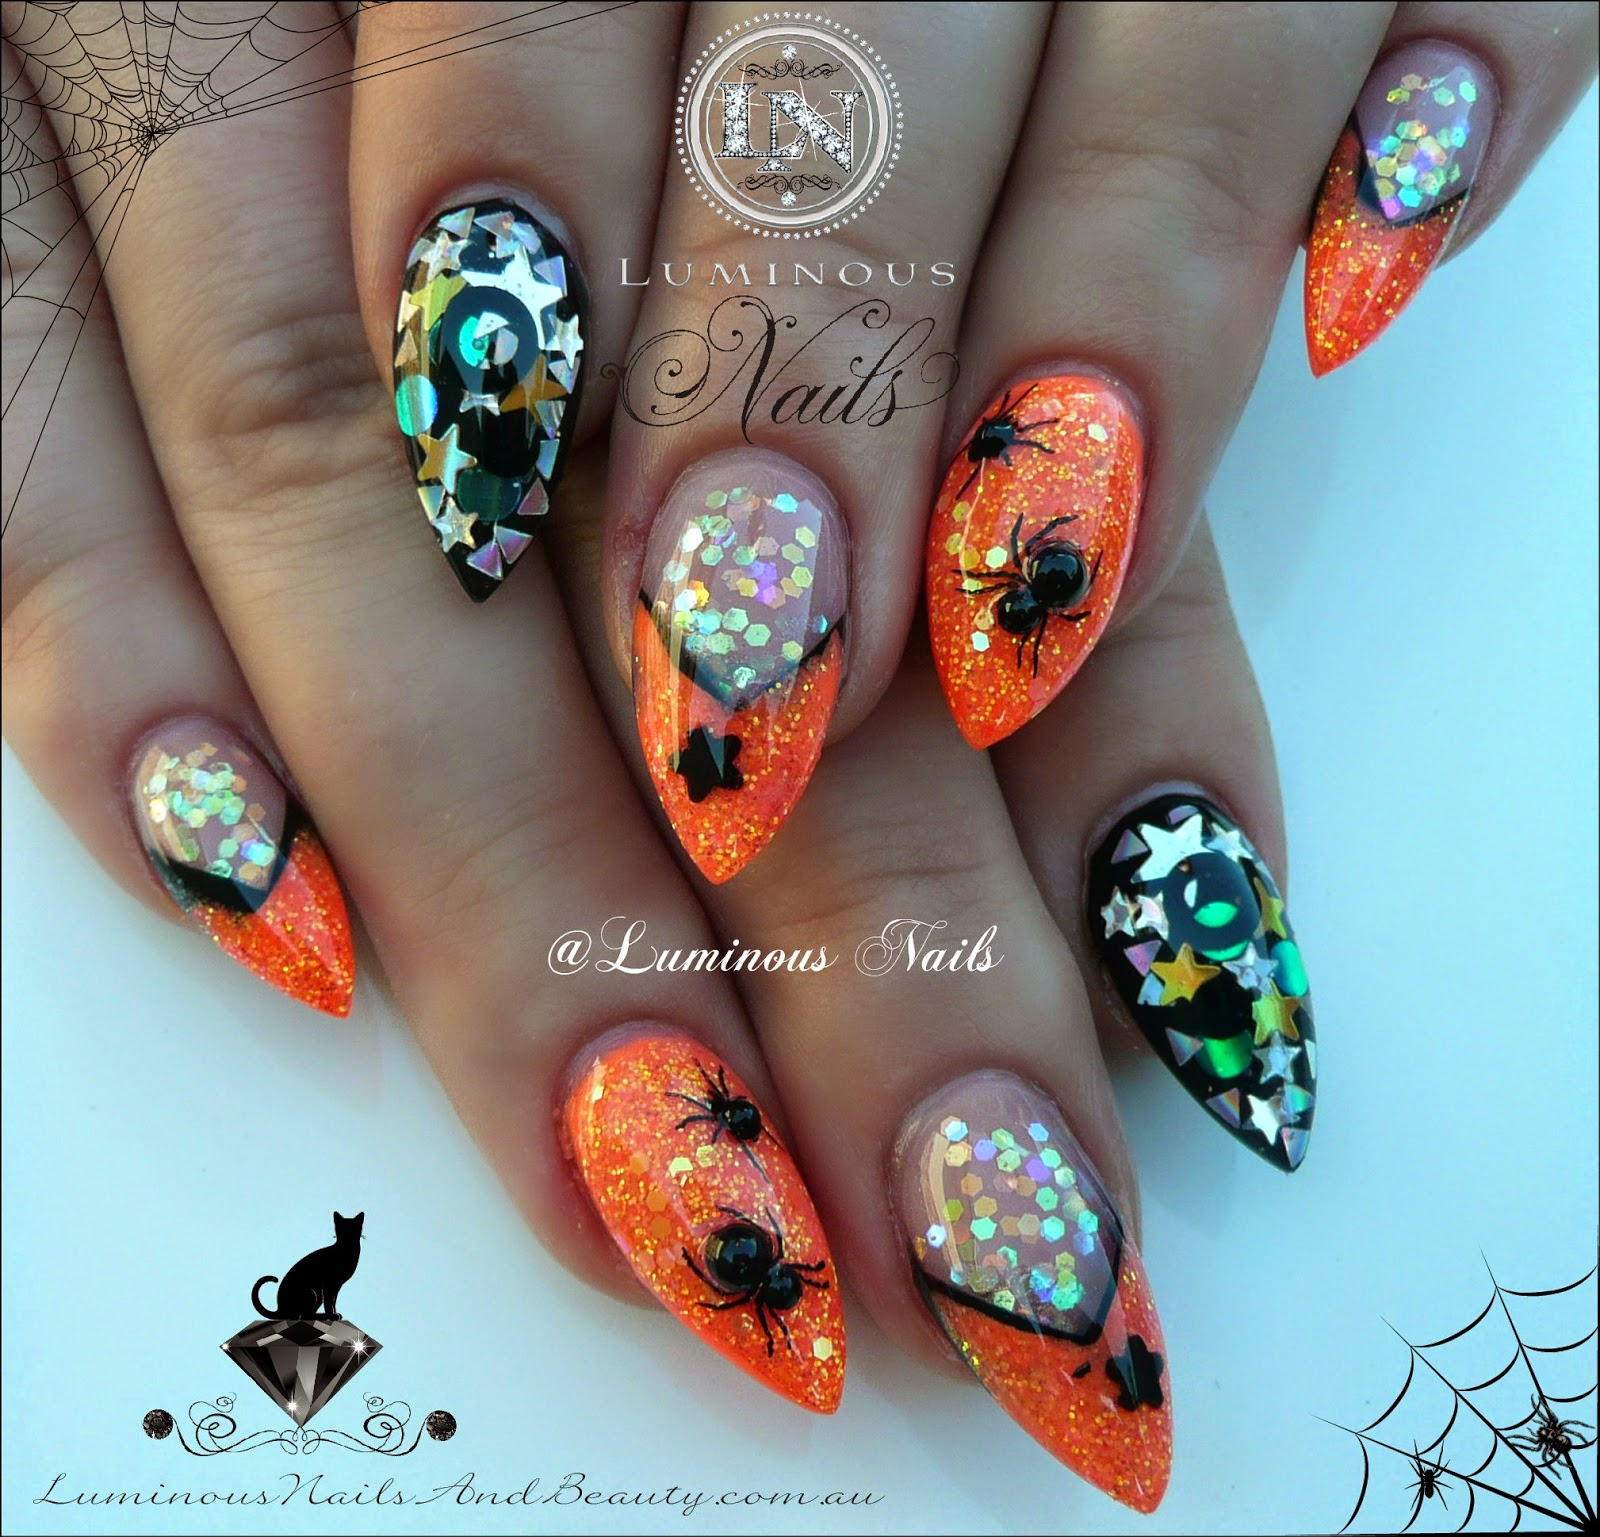 Luminous Nails: Halloween Acrylic Nails with Scary Creepy spiders!